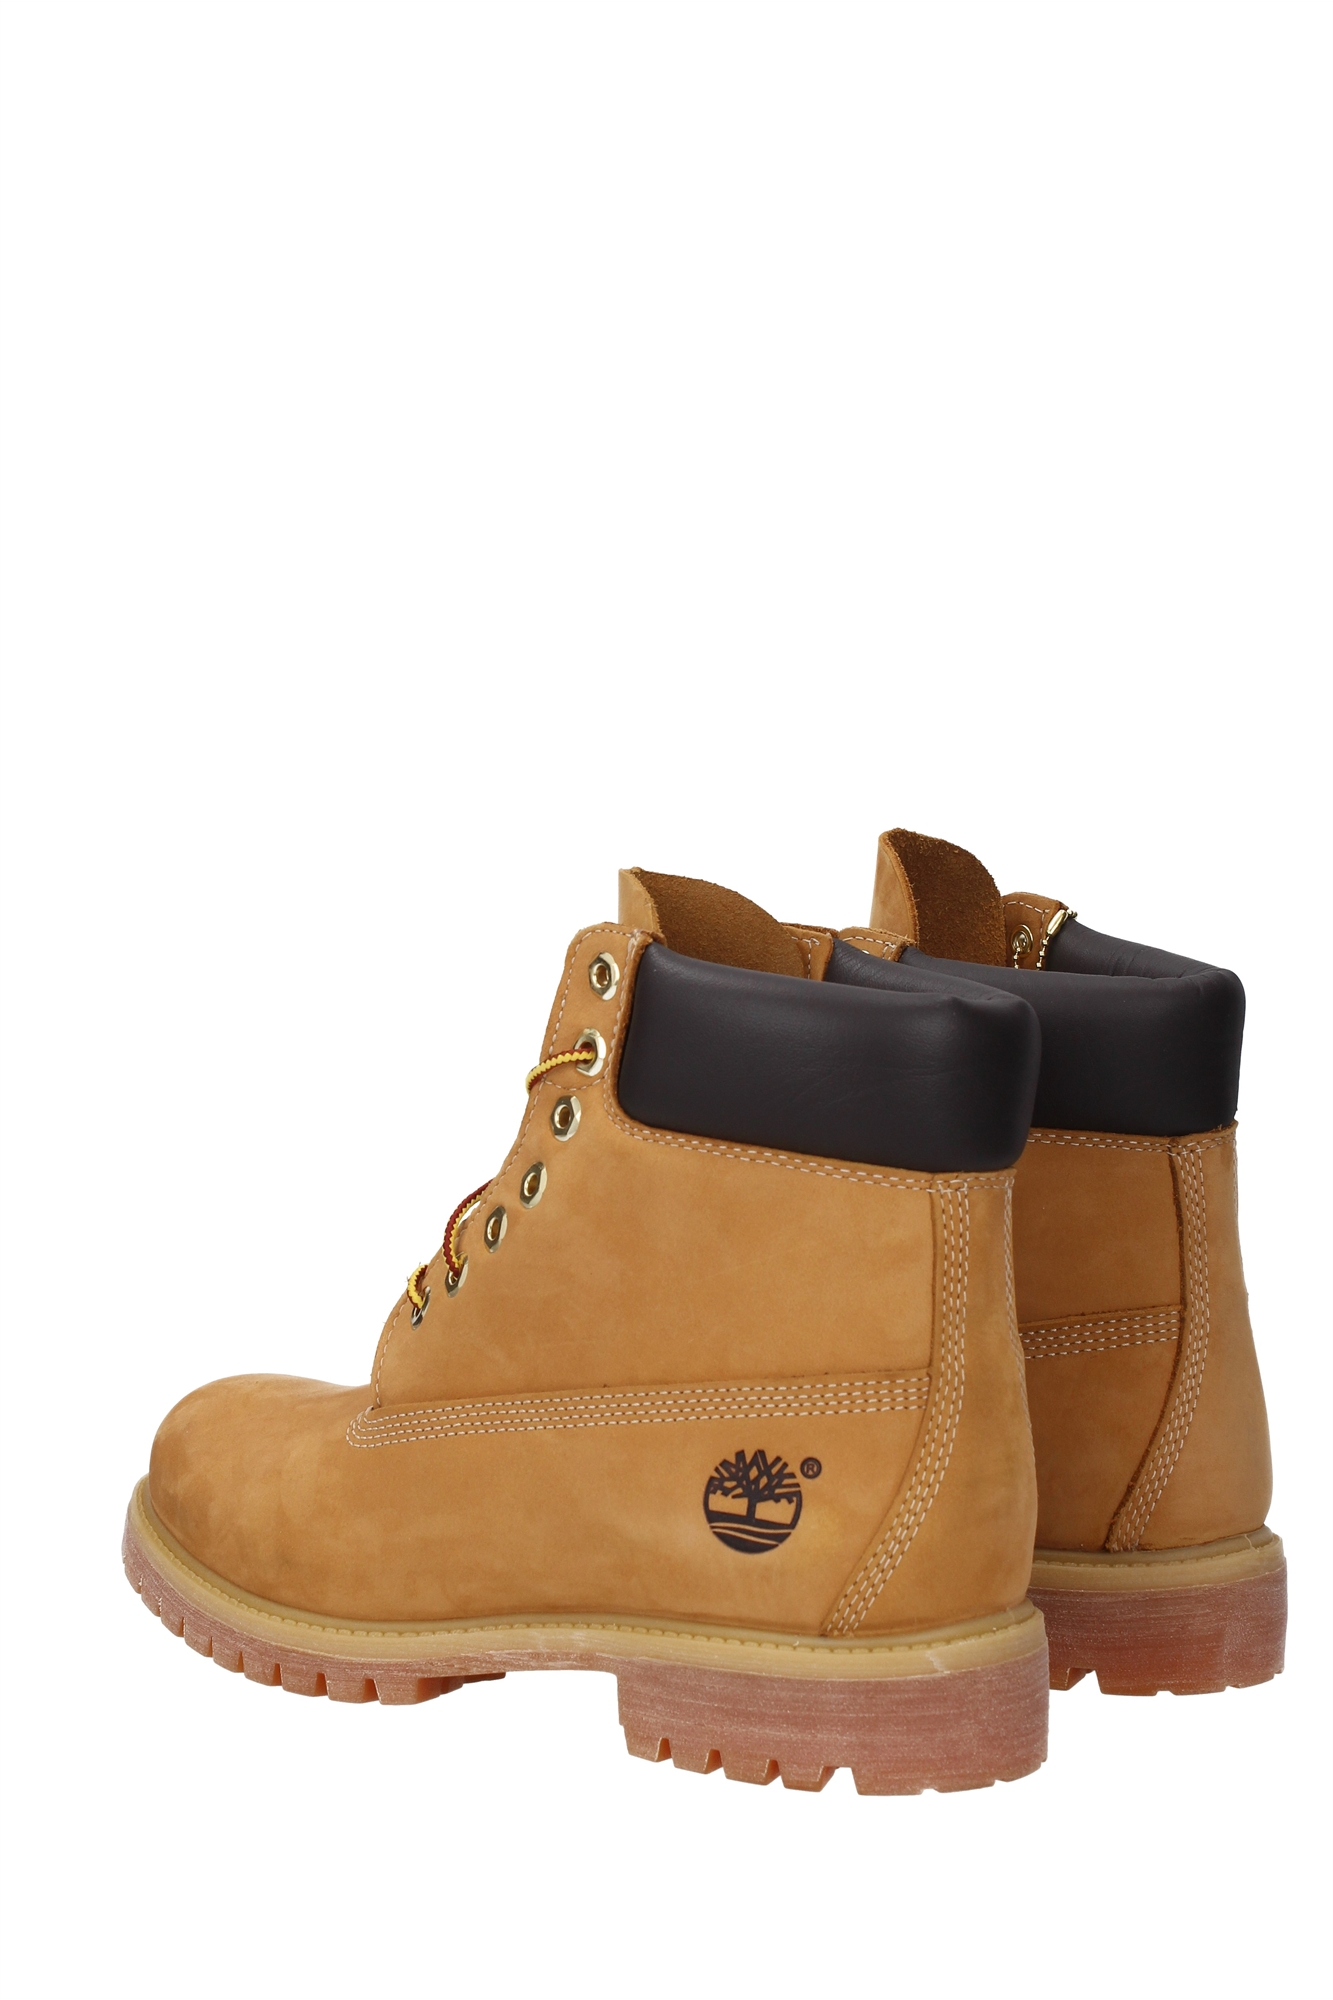 ankle boots timberland suede brown 10061wheatyell ebay